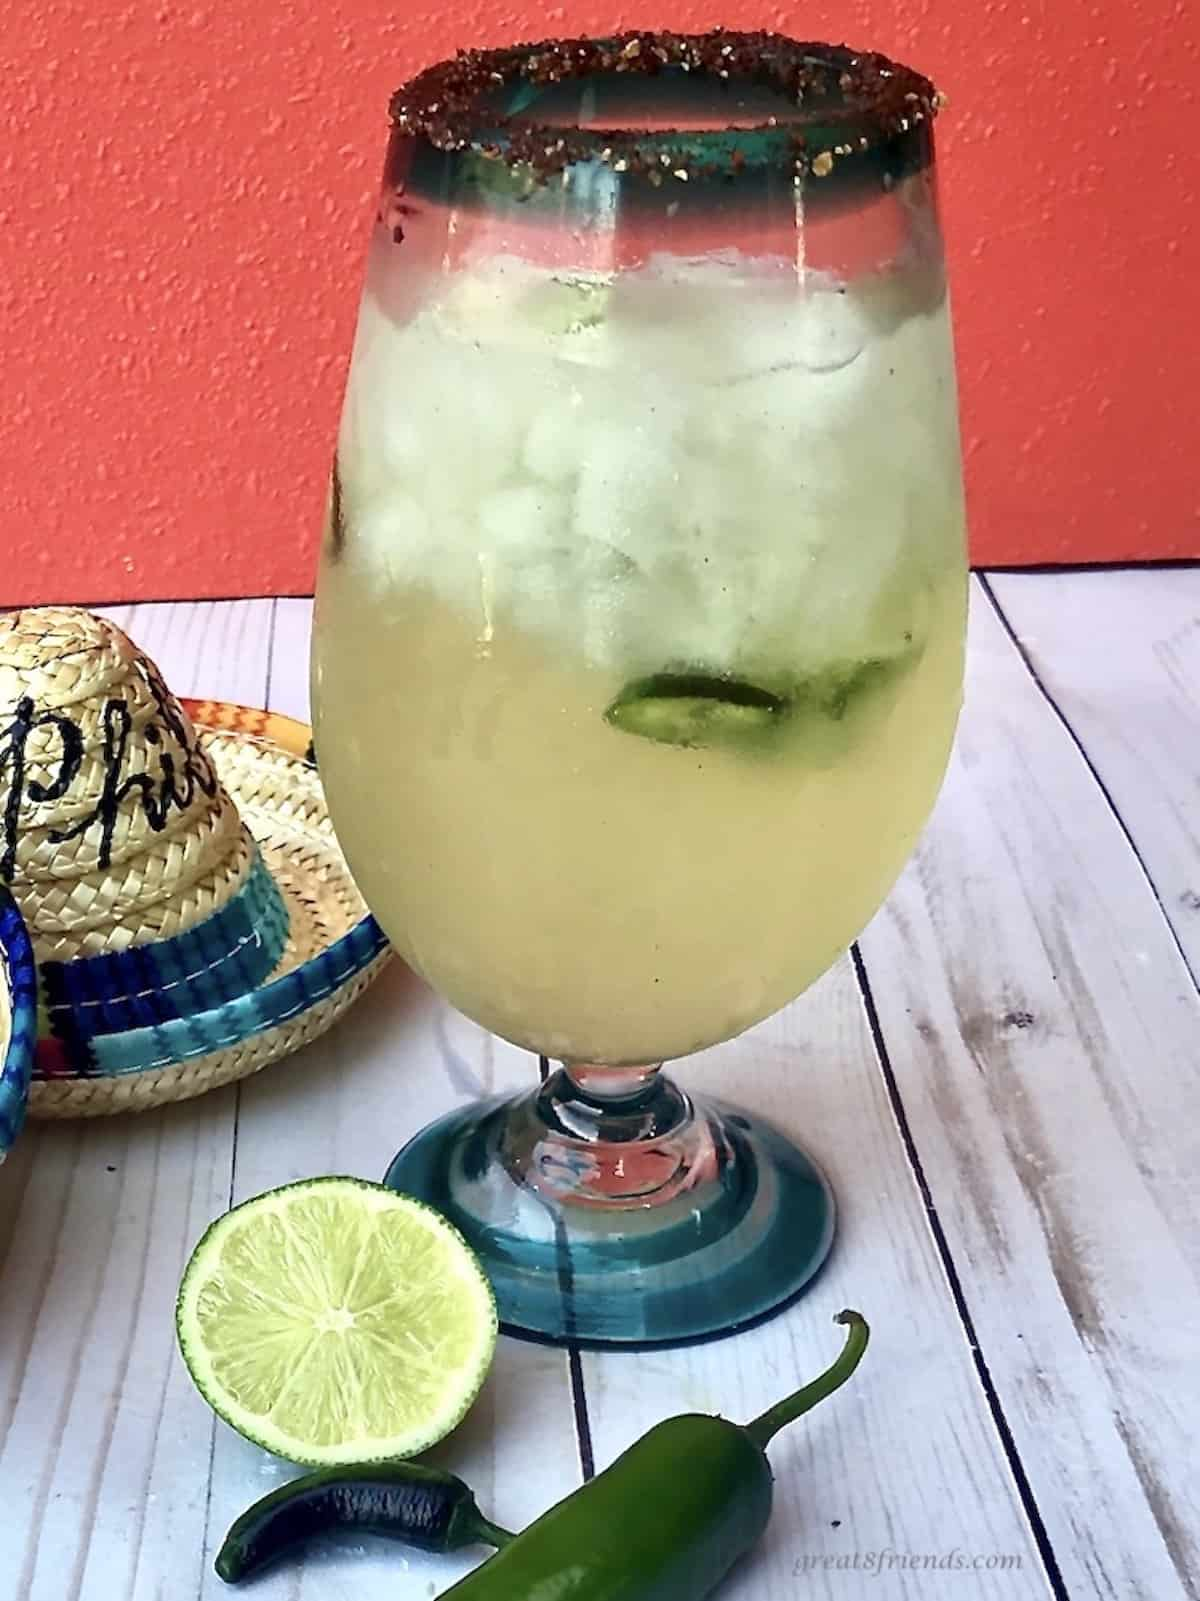 Large glass filledwith ice and a margarita with limes and jalapeños on the table and two mini sombreros with names written on them.